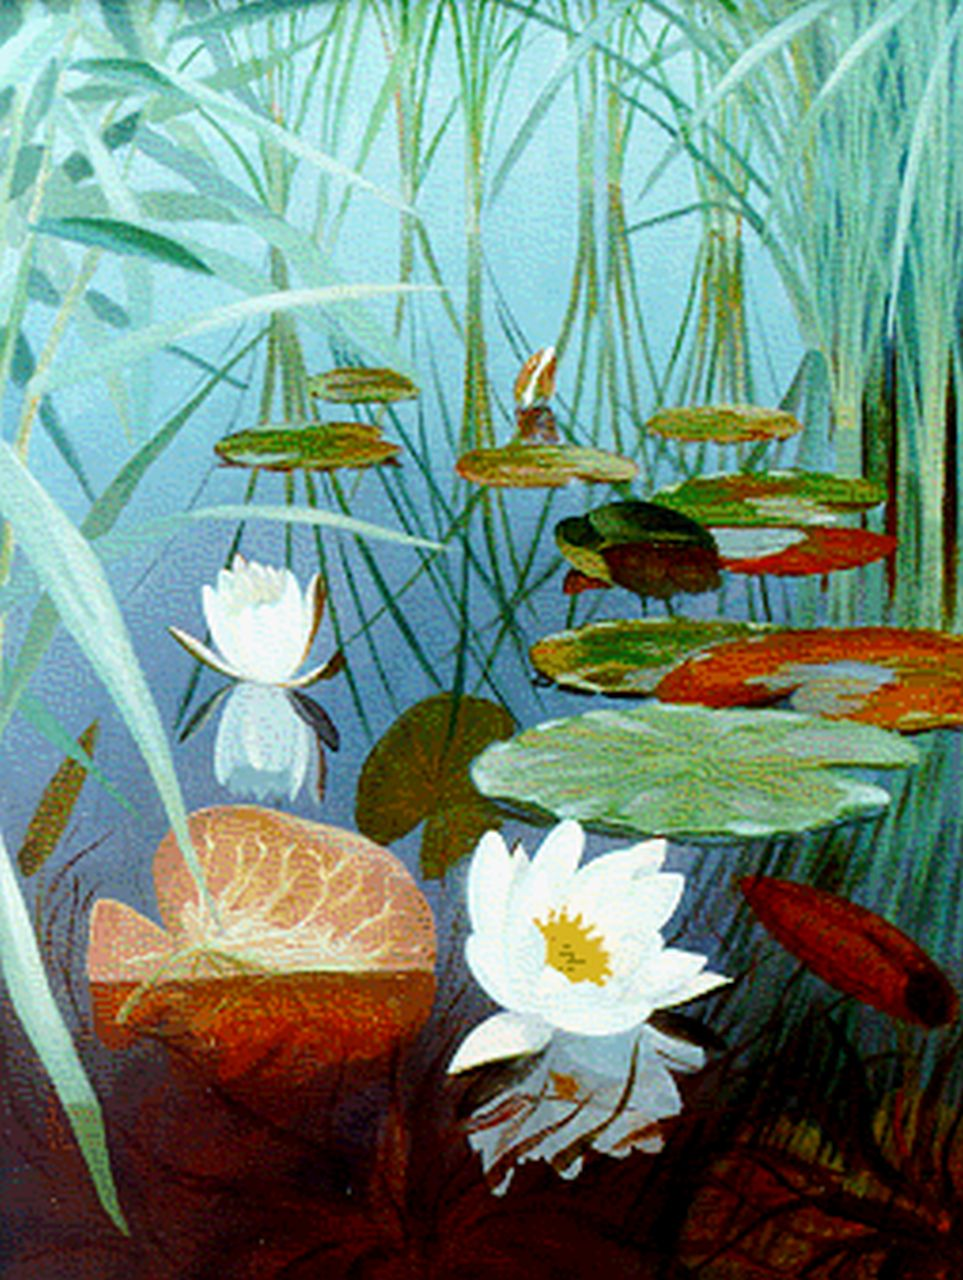 Smorenberg D.  | Dirk Smorenberg, water lilies, oil on canvas 51.1 x 39.2 cm, signed l.r.